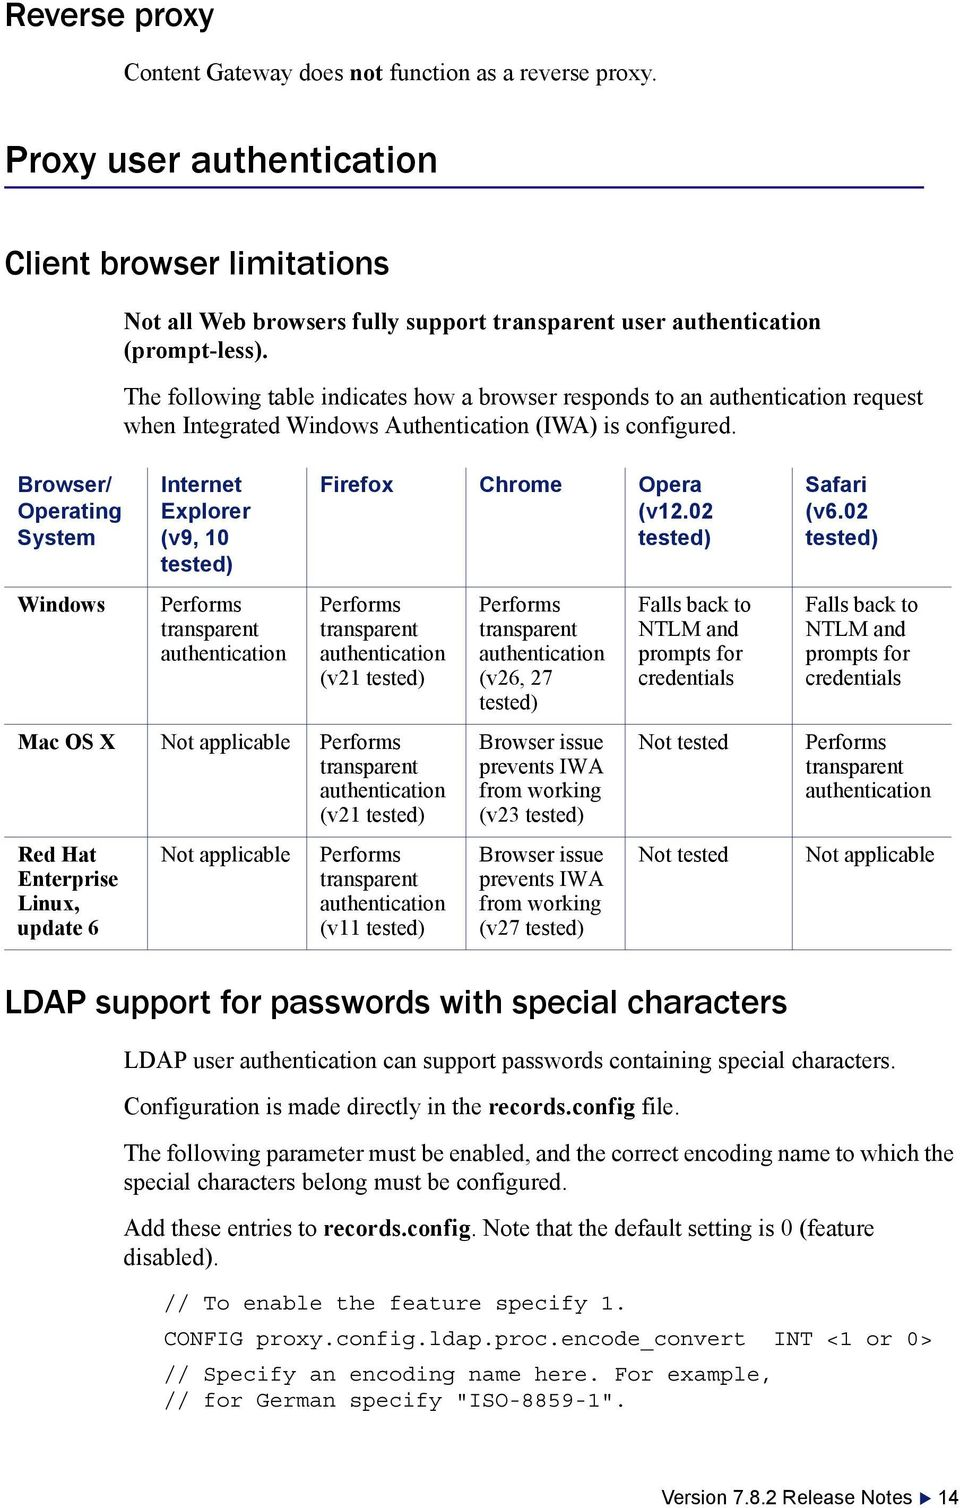 The following table indicates how a browser responds to an authentication request when Integrated Windows Authentication (IWA) is configured.